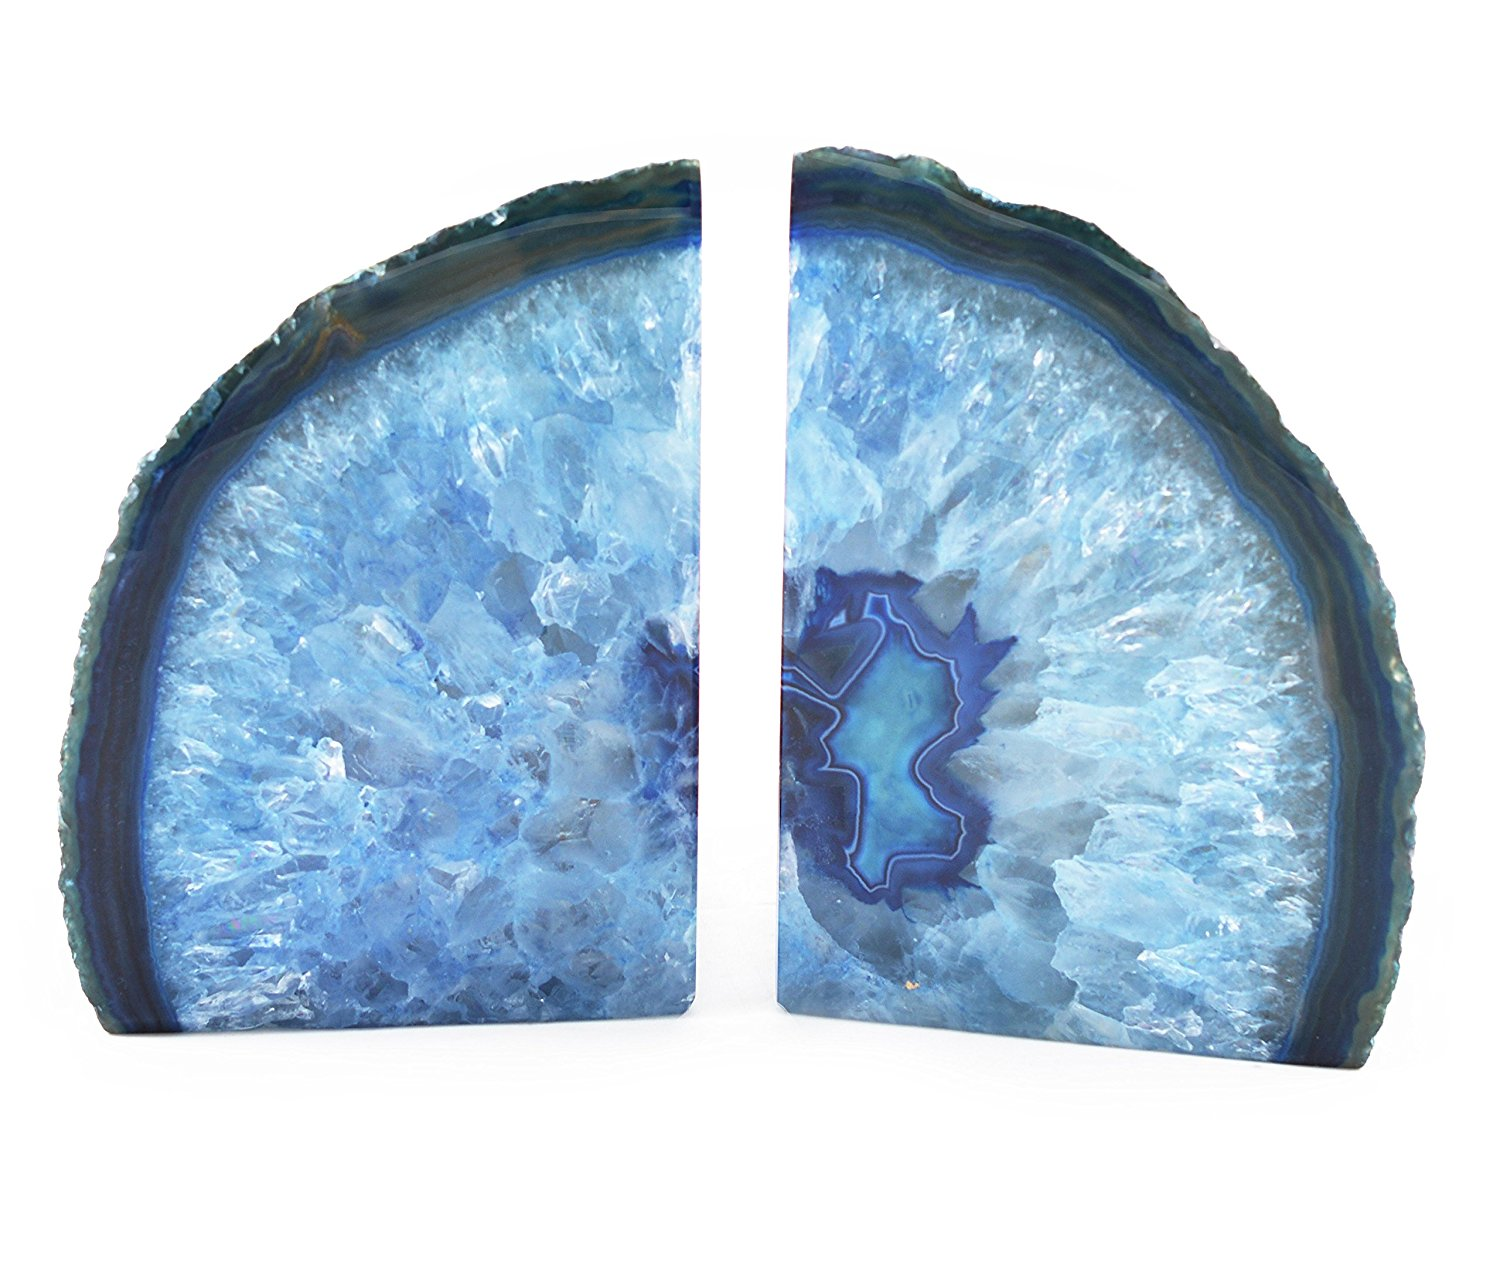 Winsome Crystal Bookends | Appealing Geode Bookends